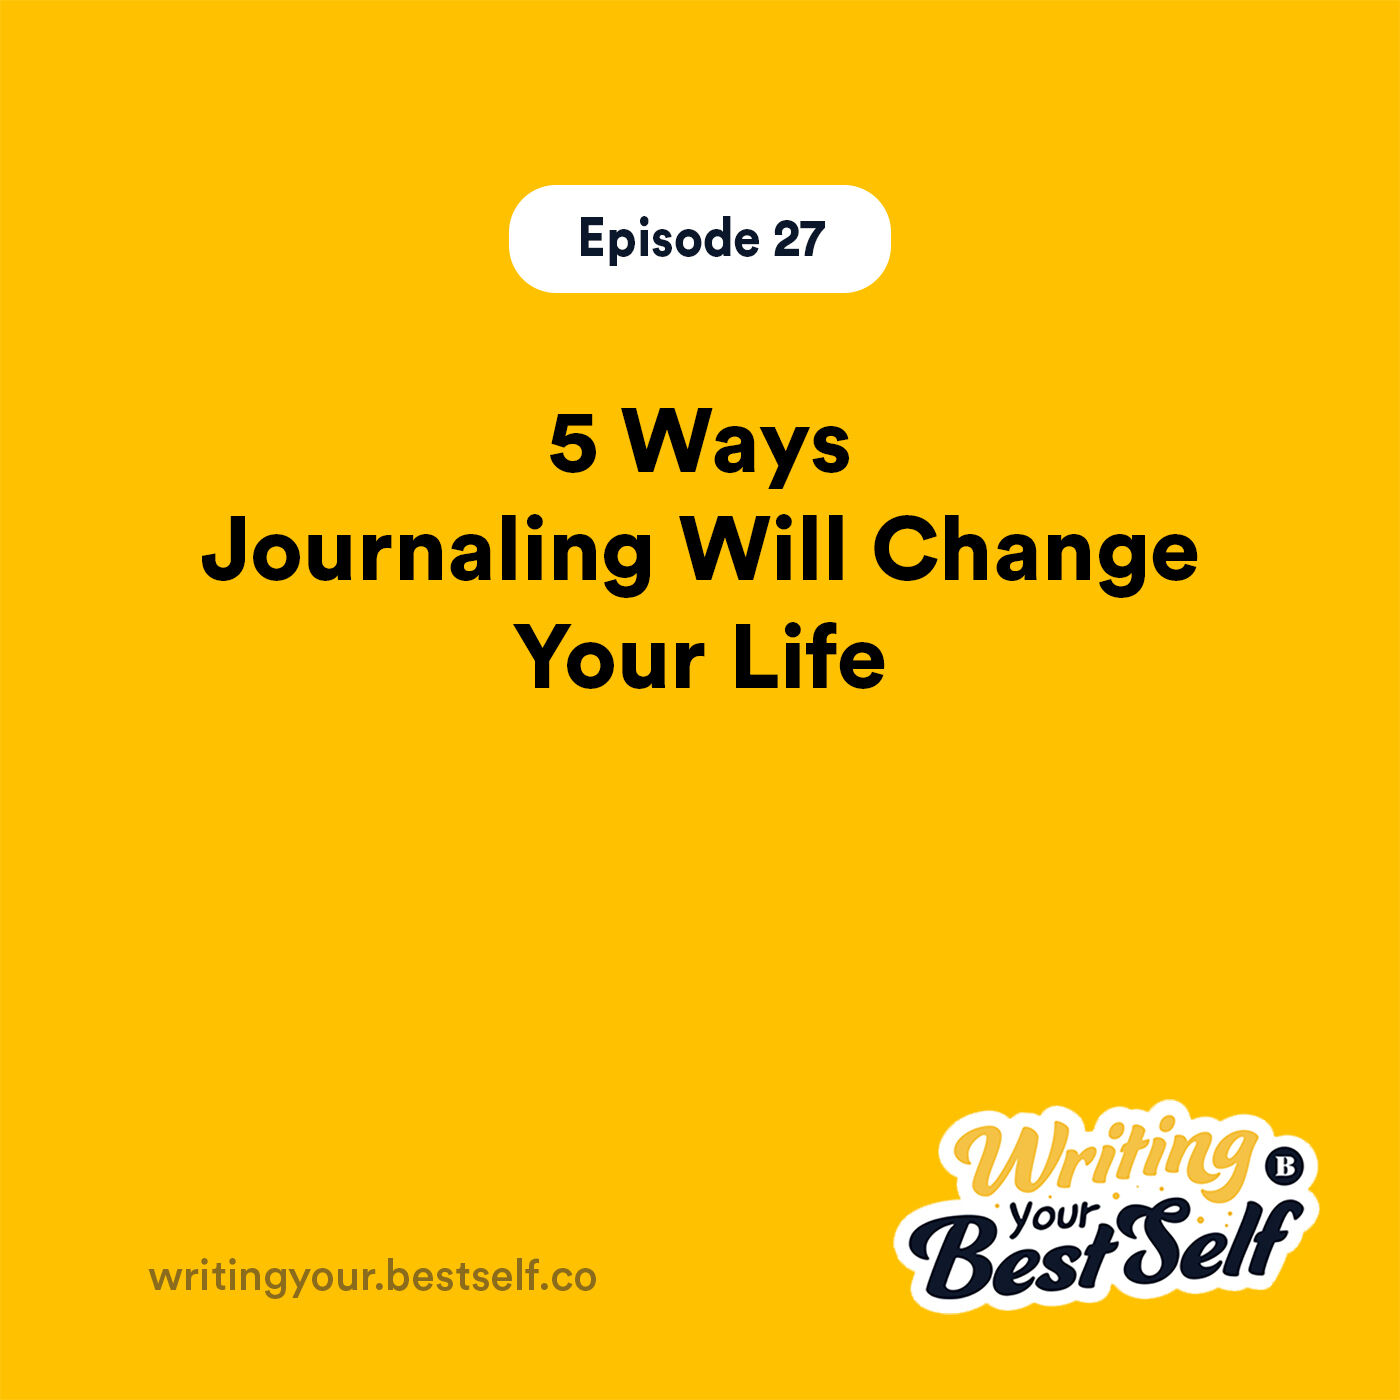 5 Ways Journaling Will Change Your Life